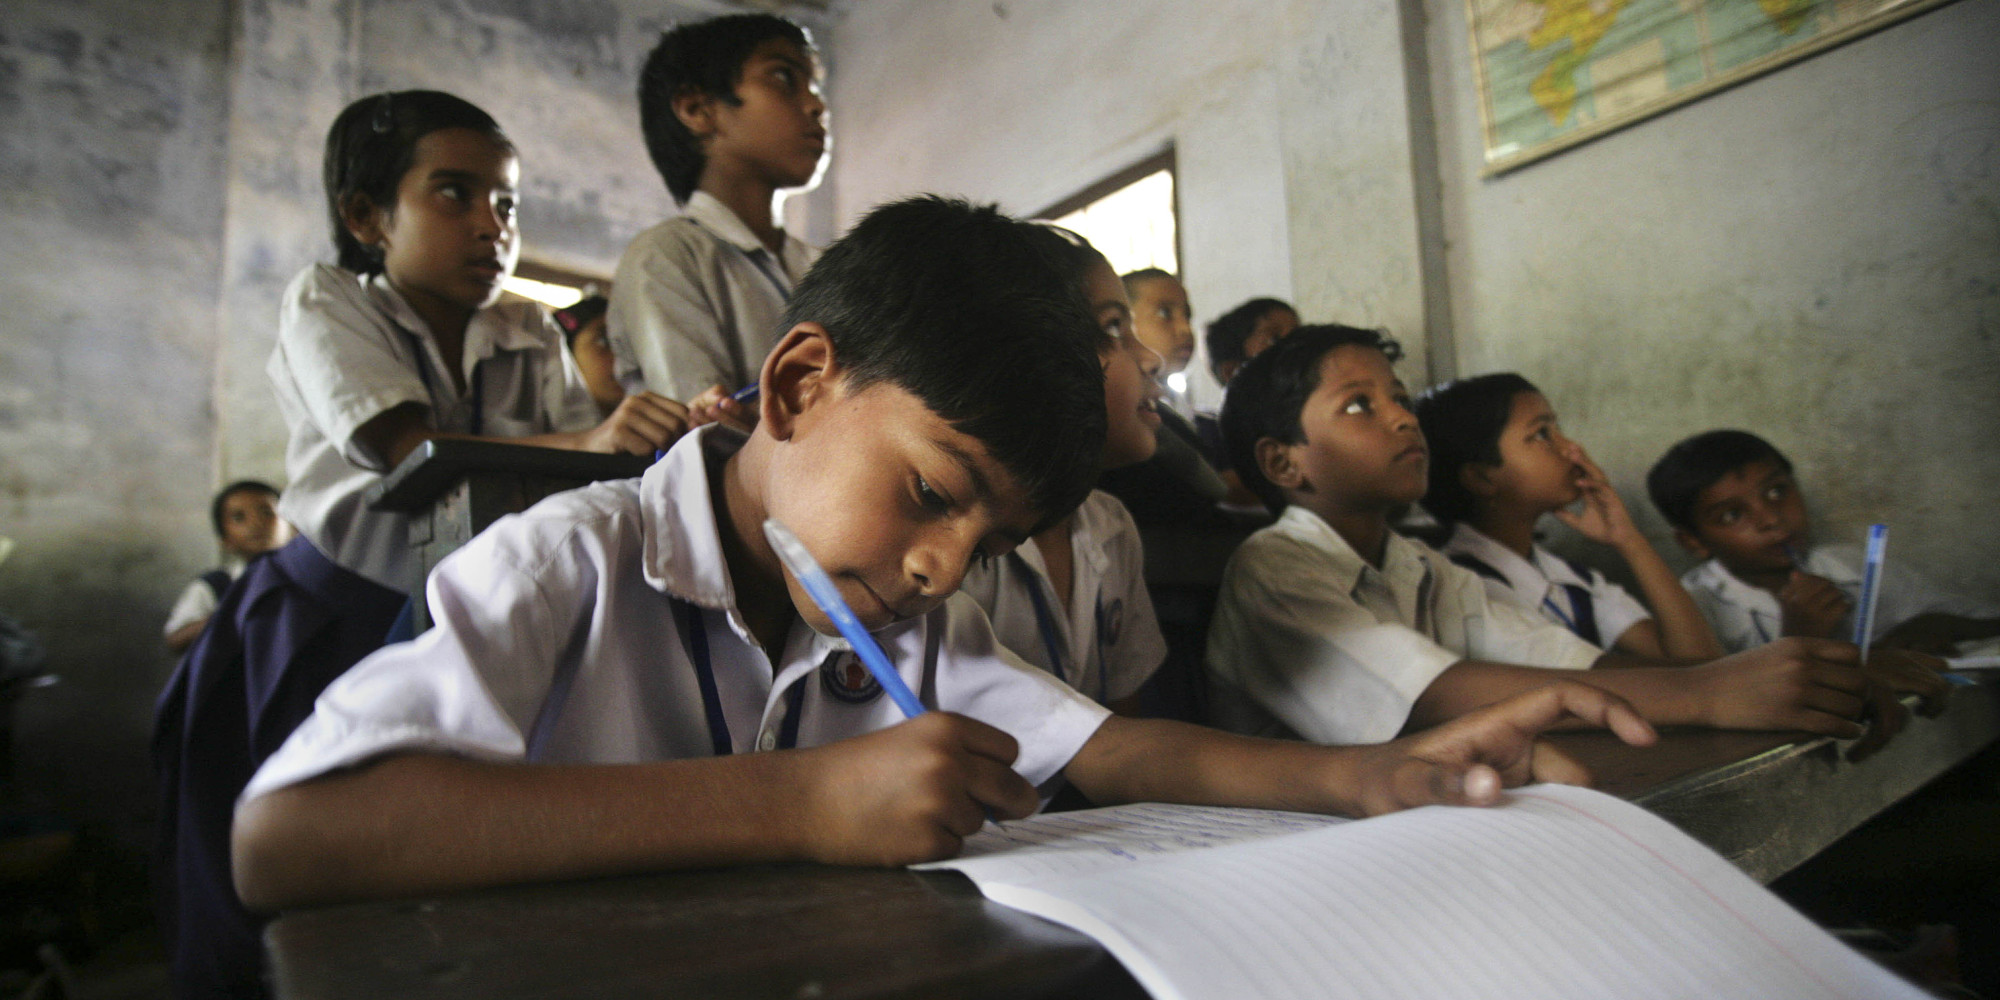 RSS to focus on promoting 'Indianness' in education. (Photo: Sucheta Das)